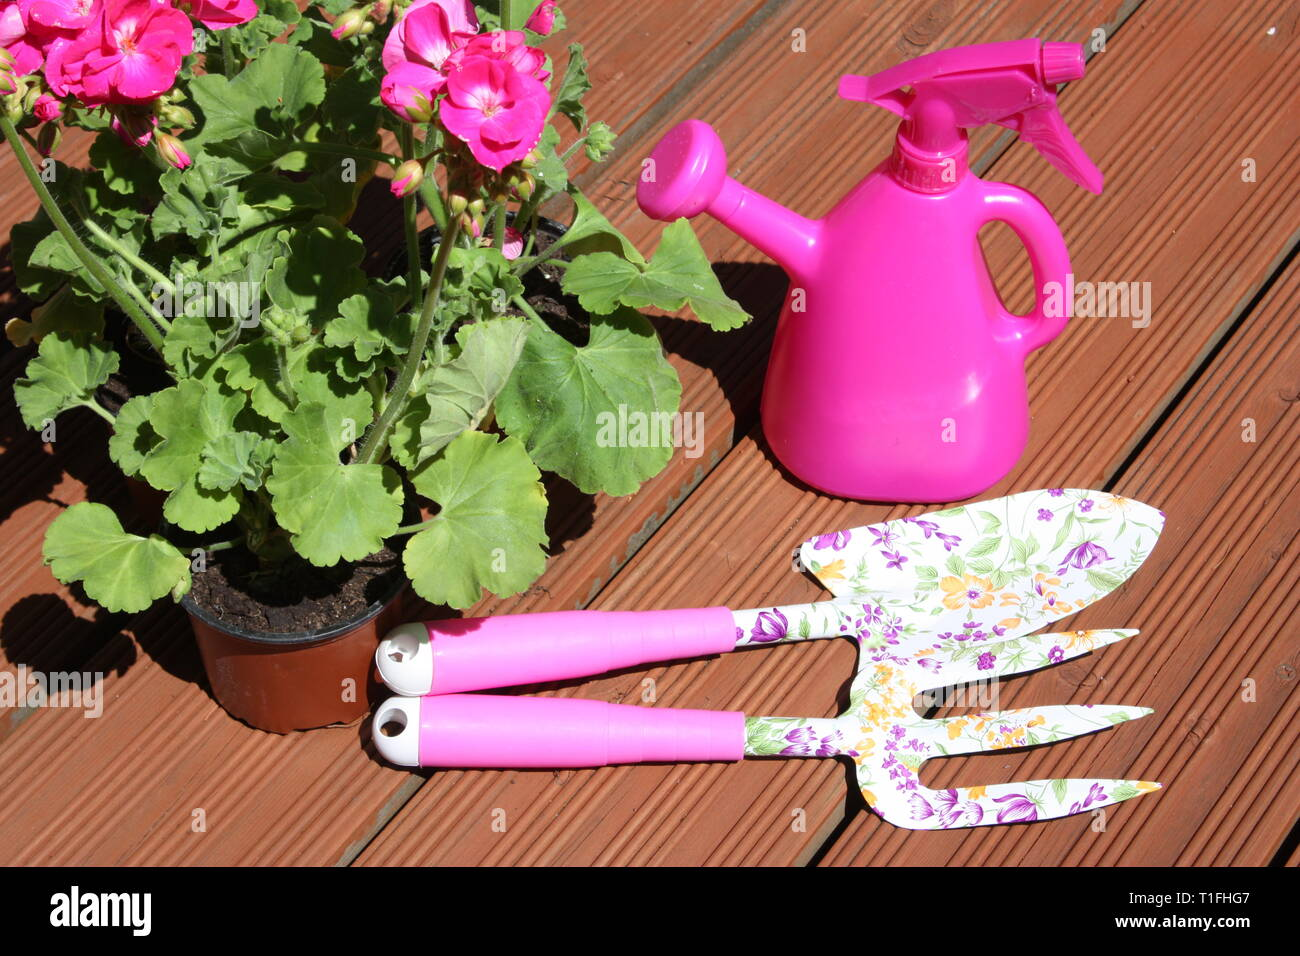 Pink geranium flowering plants with garden tools Stock Photo